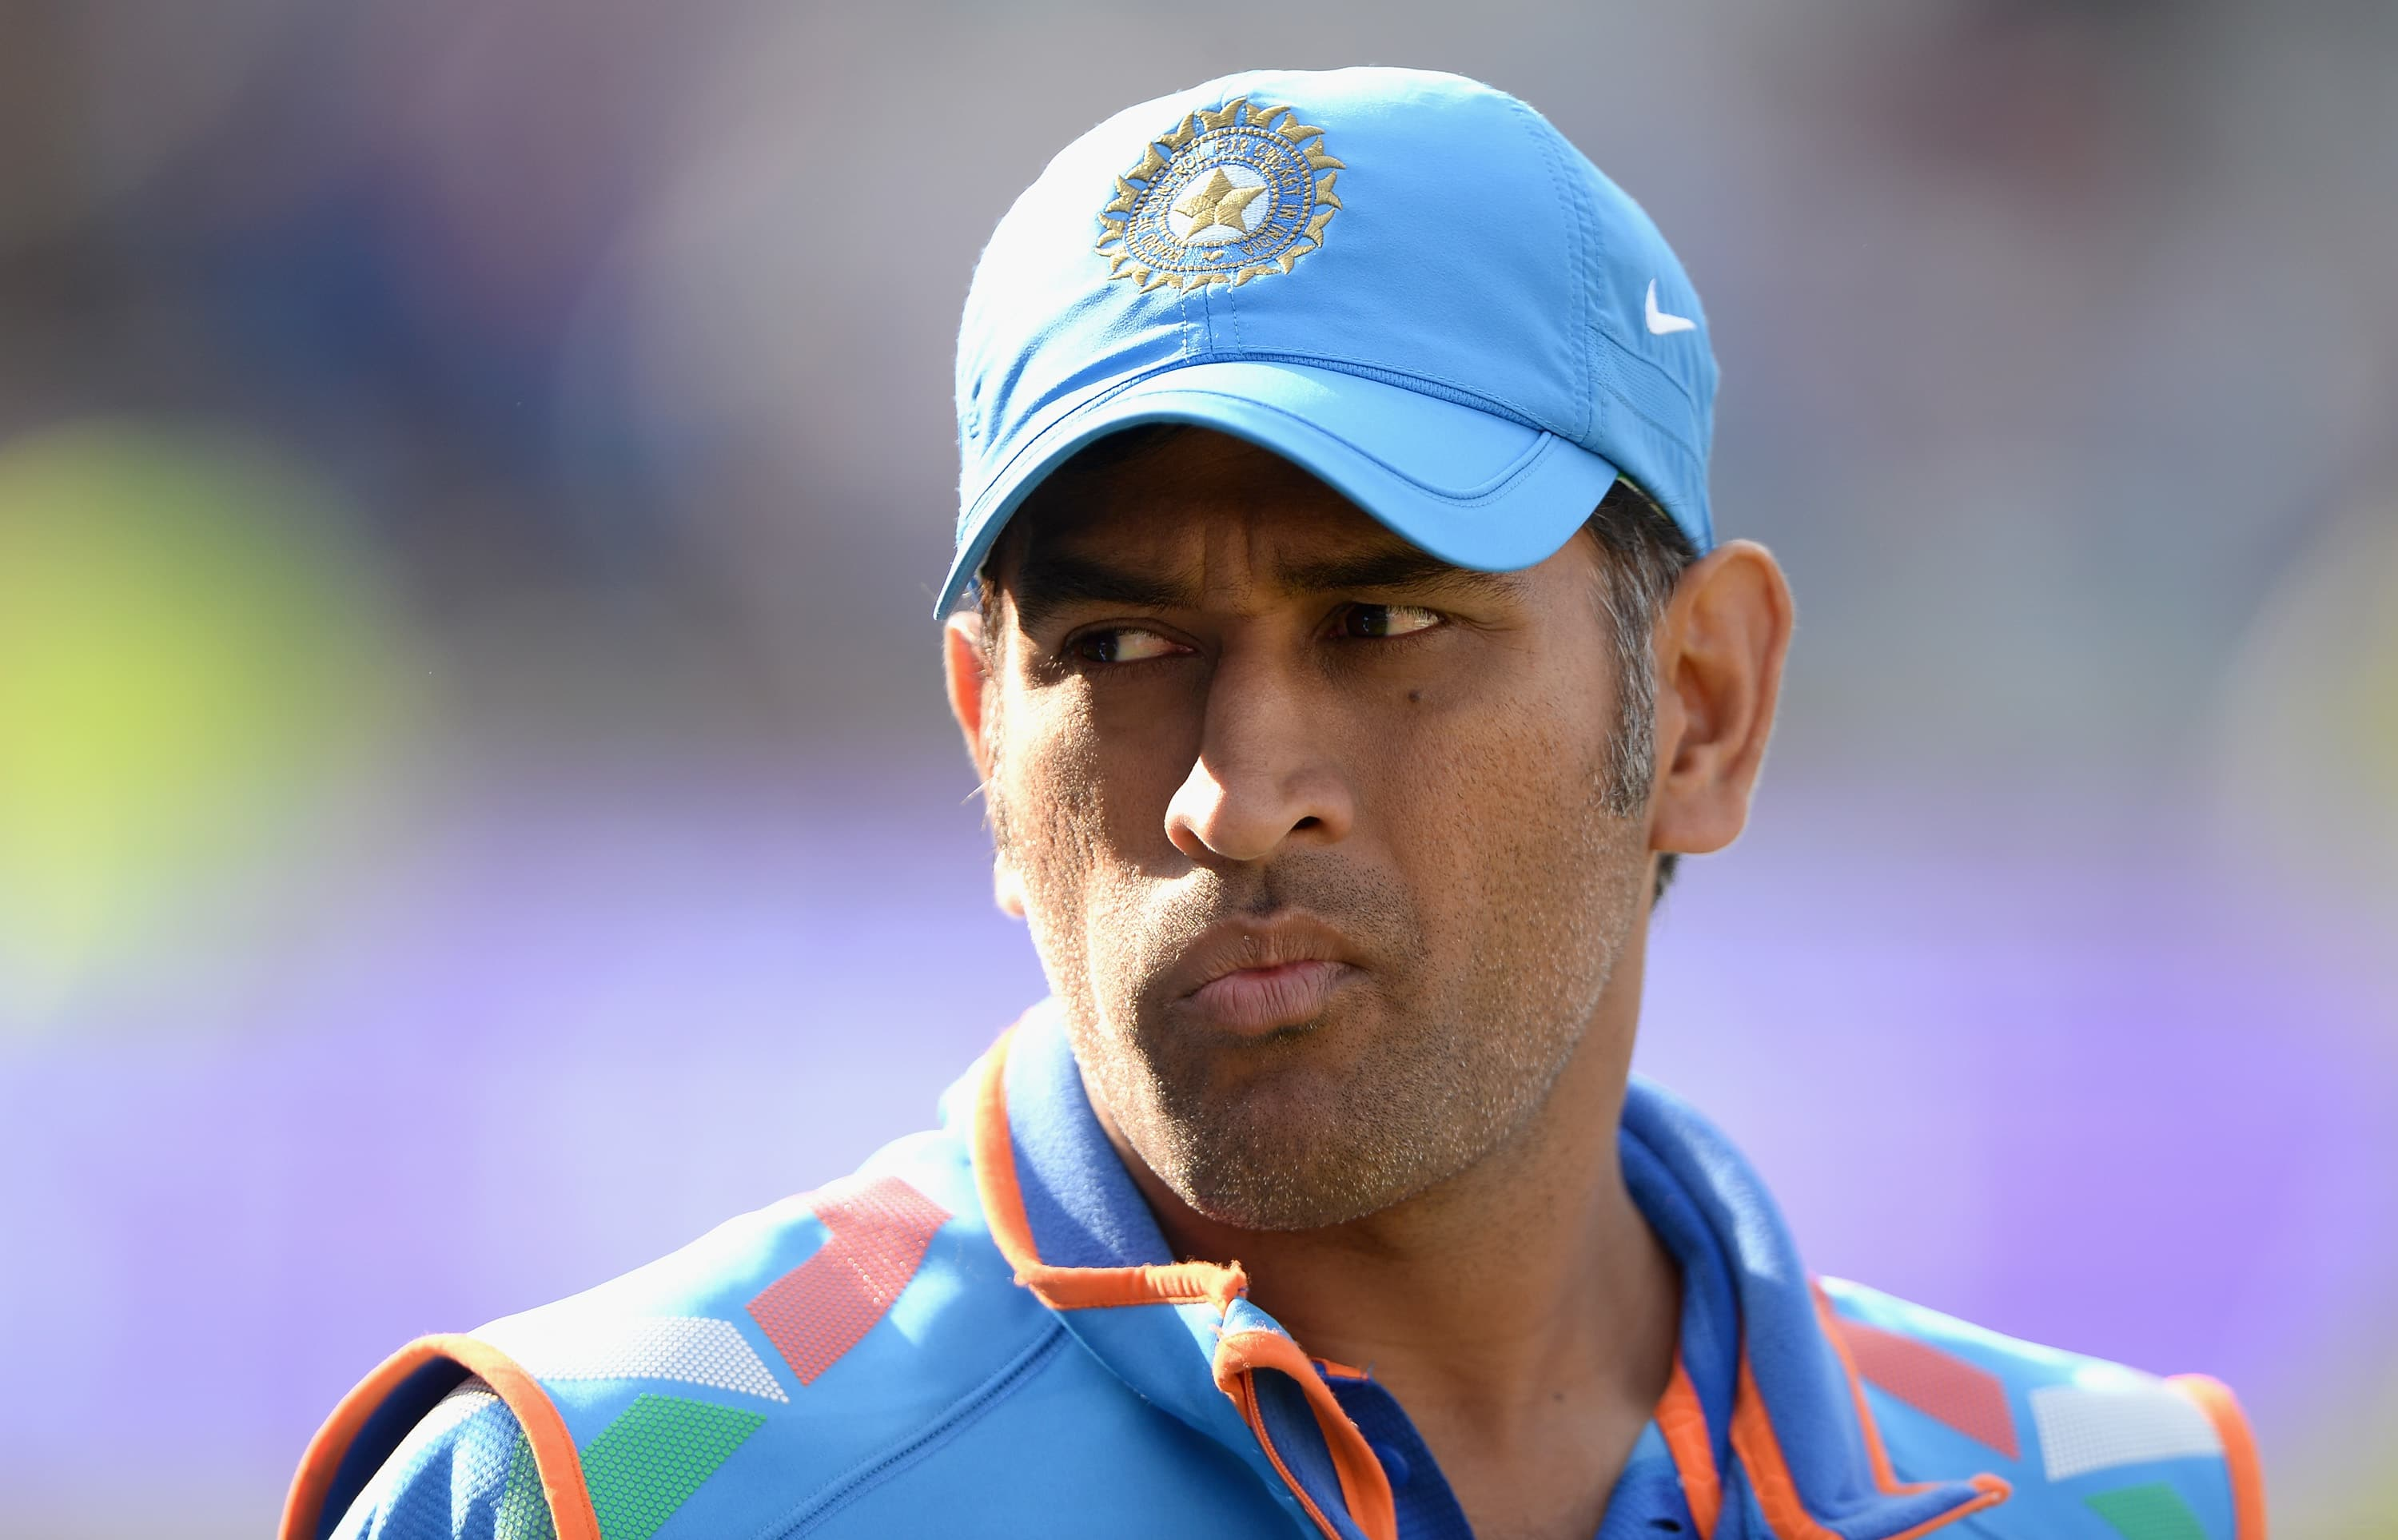 MS Dhoni to be the new face of gaming platform Dream11